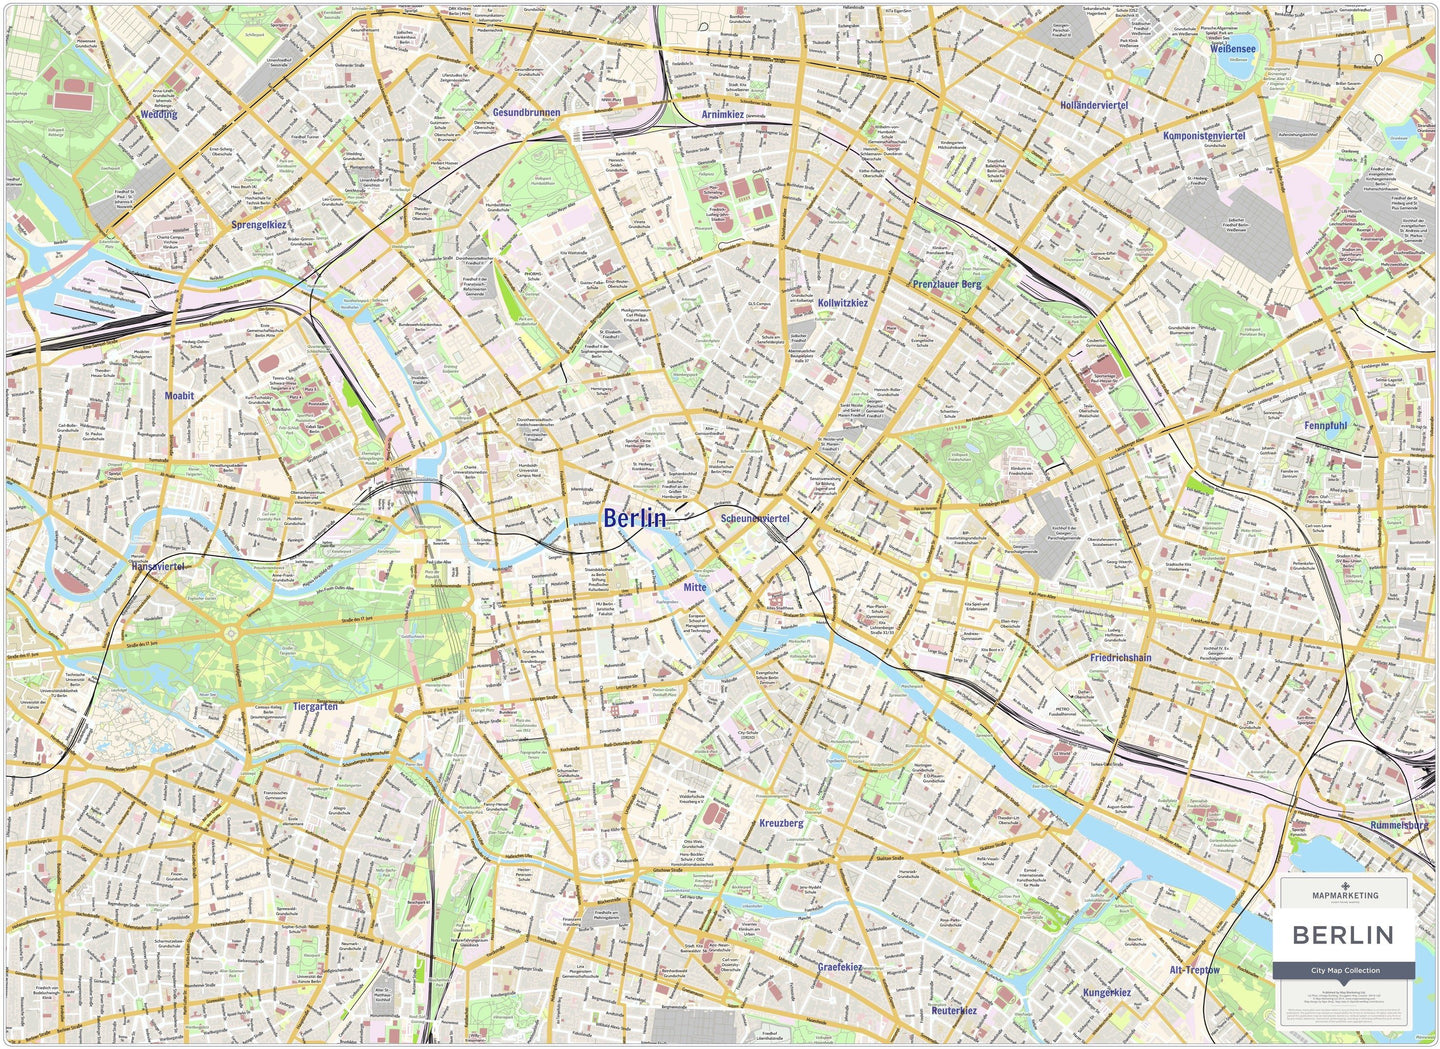 Berlin On Map Of Germany.Berlin City Map Laminated Wall Map Of Berlin Germany